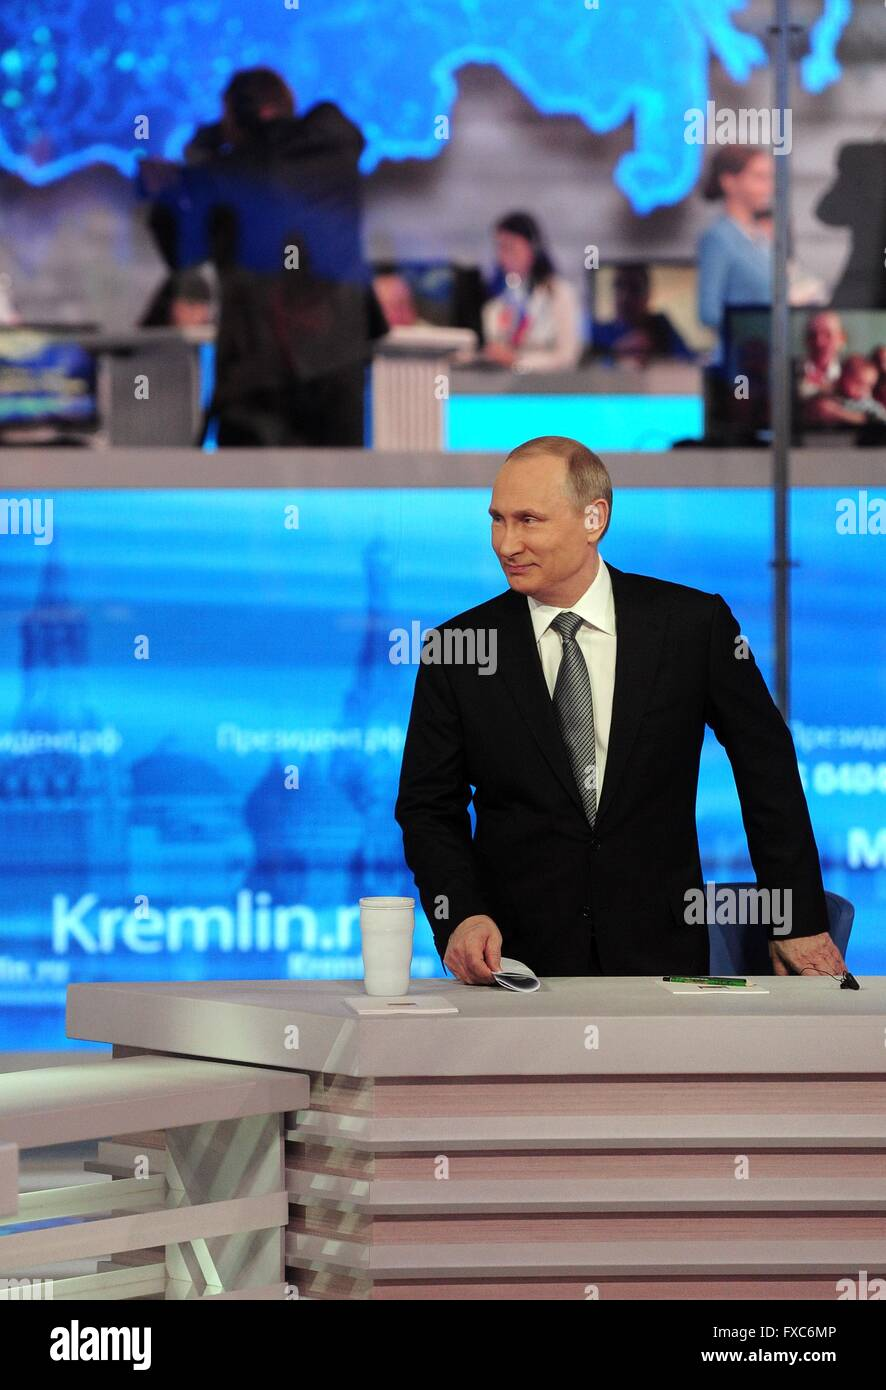 Moscow, Russia. 14th Apr, 2016. Russian President Vladimir Putin attends a televised question-and-answer session Stock Photo